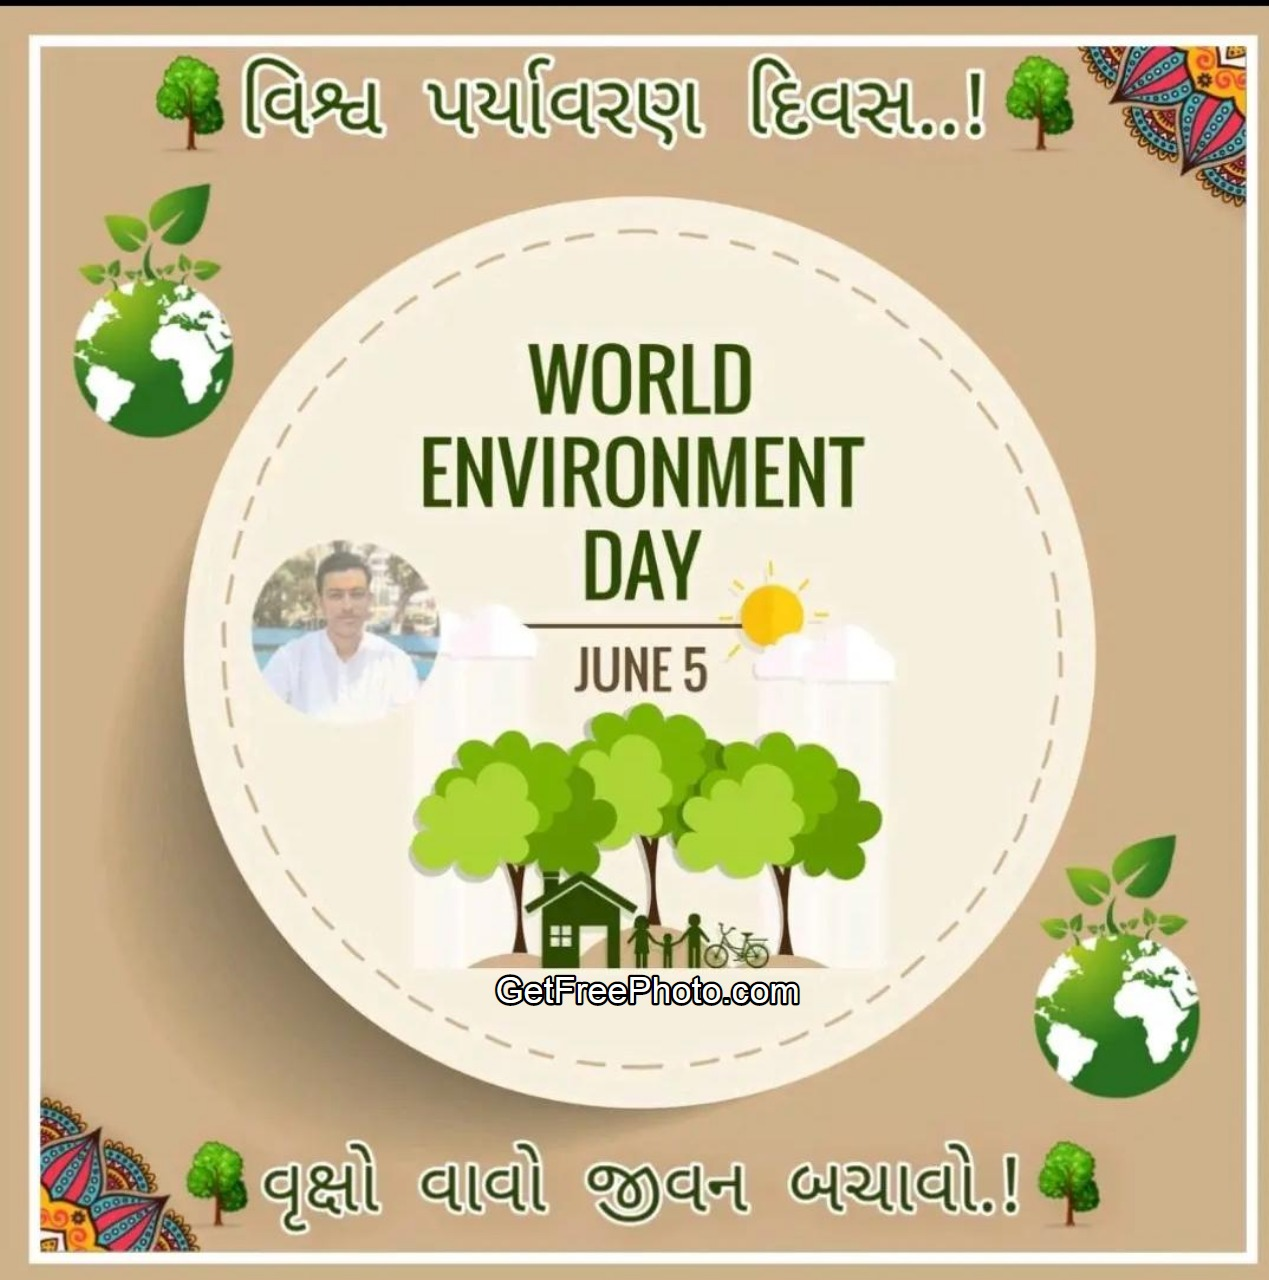 World Environment Day Wishes in Gujarati Image